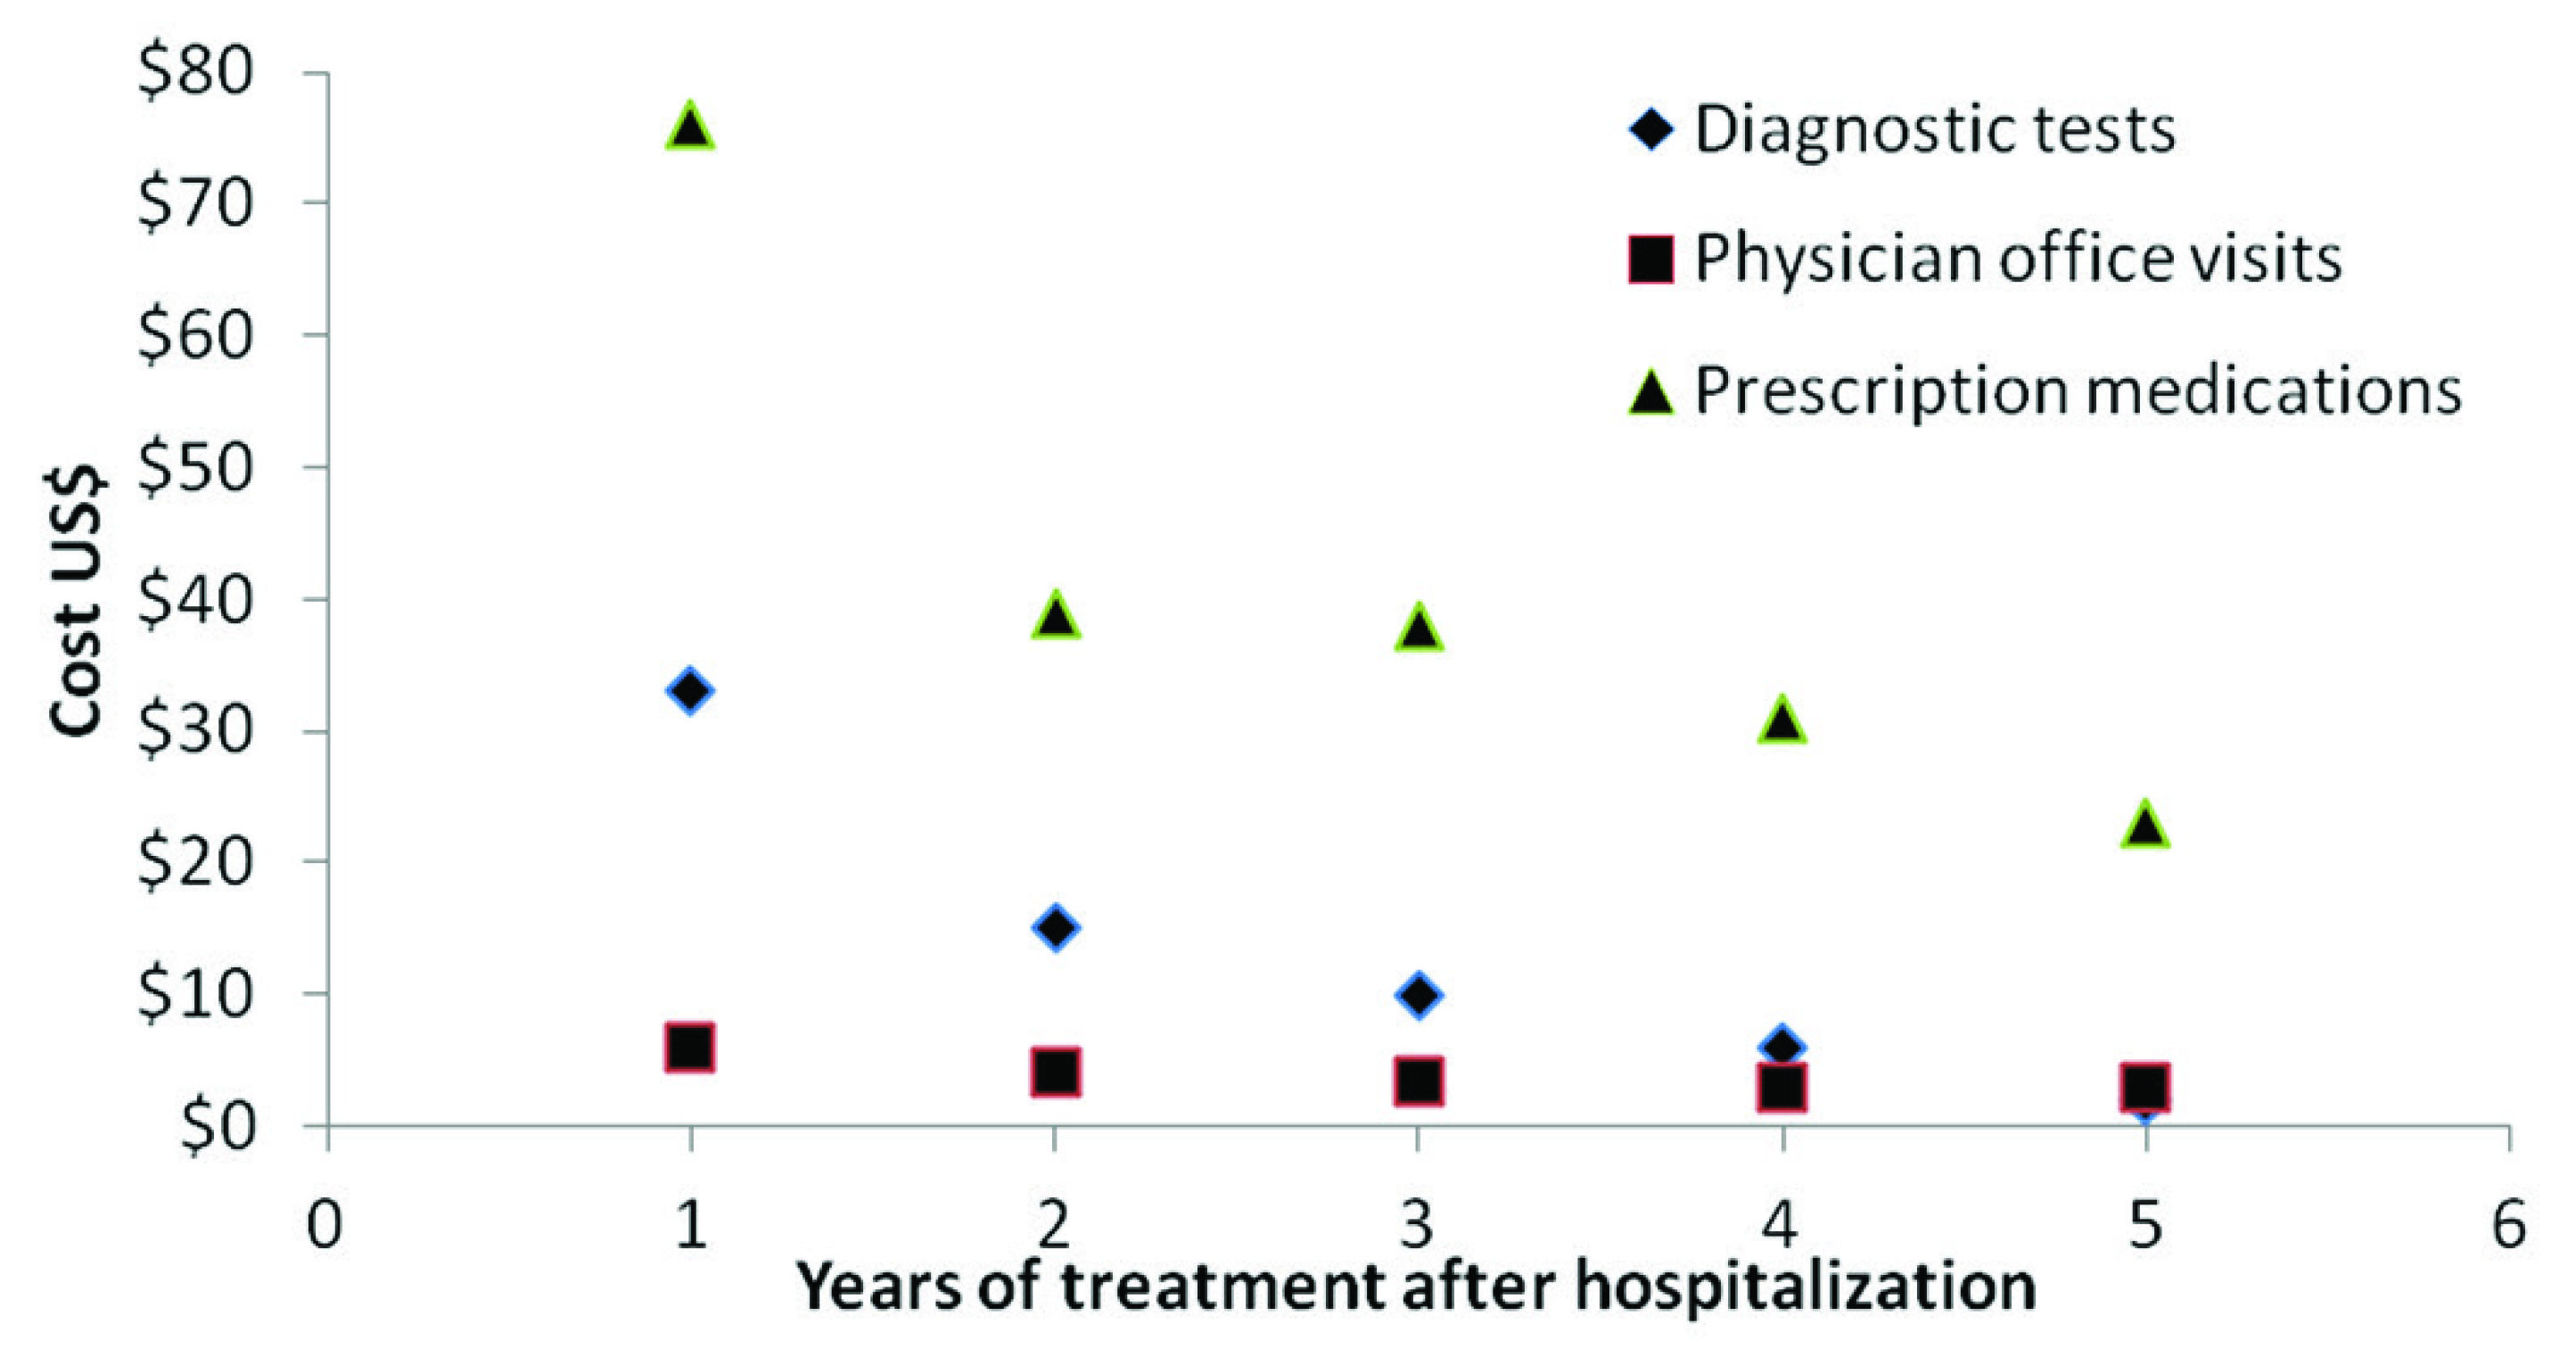 Average costs paid by the patients, broken down by cost component and year of treatment post-hospitalization for NCC patients treated at the INNN. Note: There were 86, 55, 41, 26, and 15 patients who received treatment one, two, three, four, and five years post-hospitalization, respectively